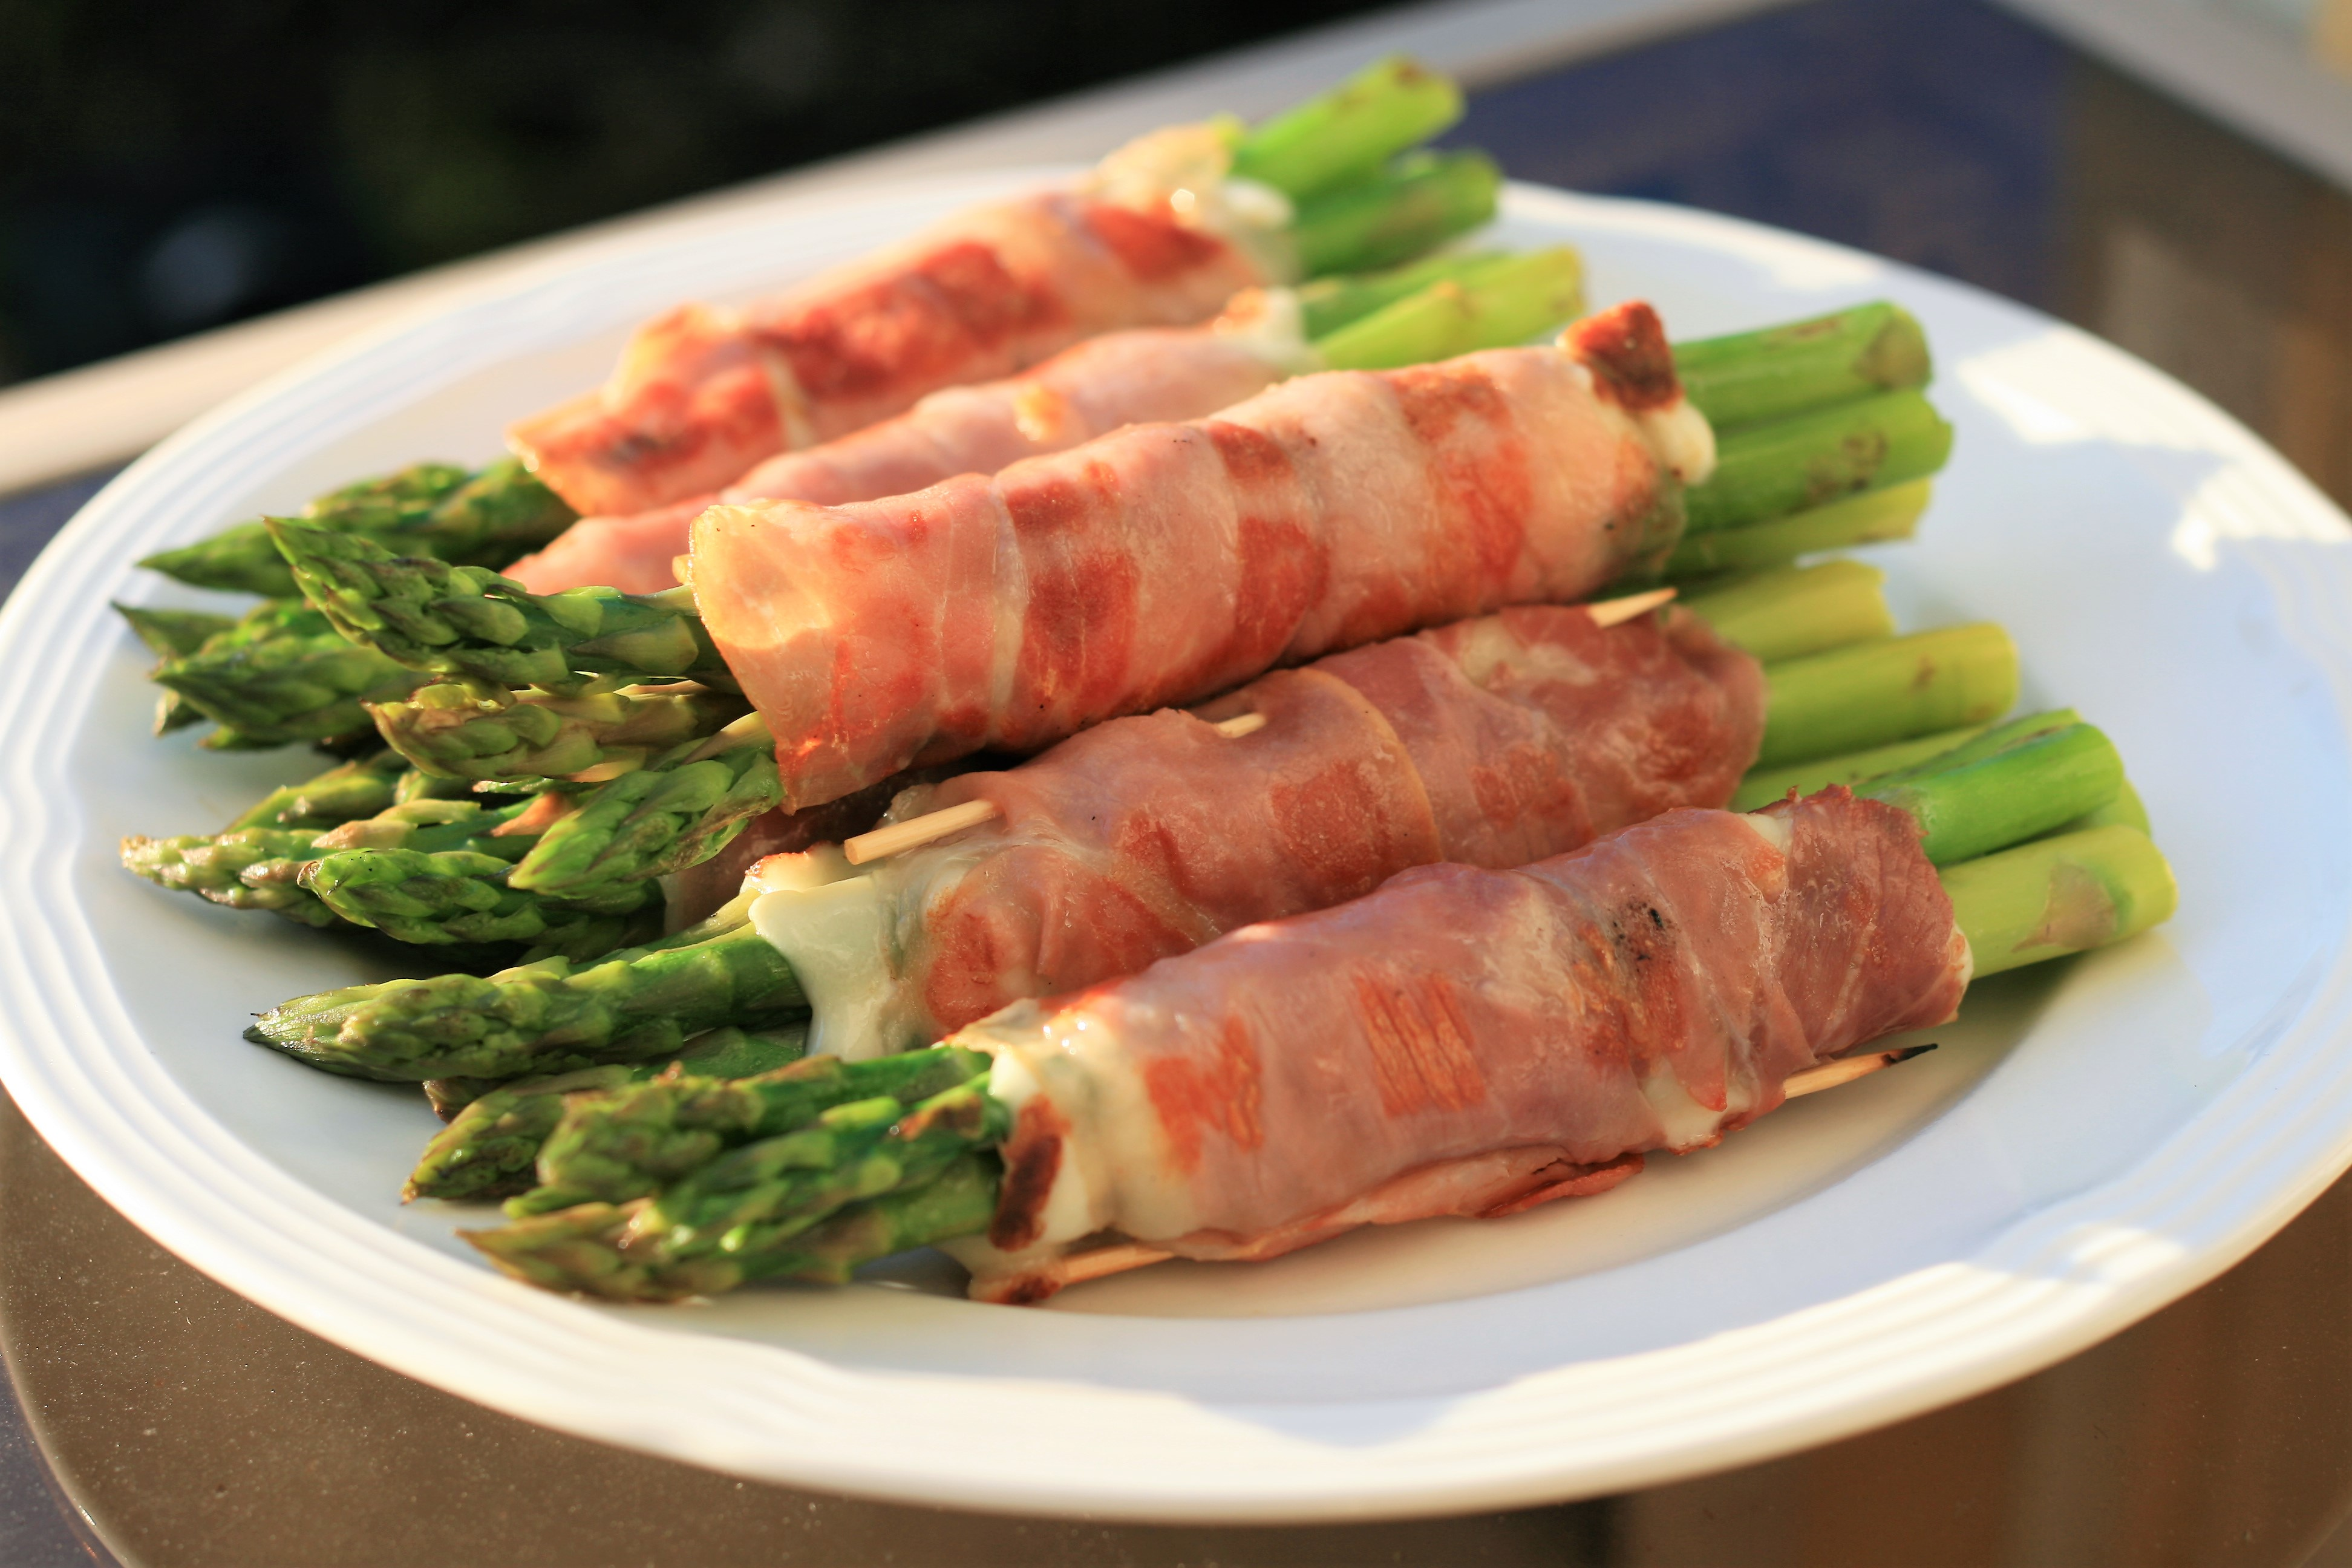 Prosciutto Wrapped Asparagus with Cheese